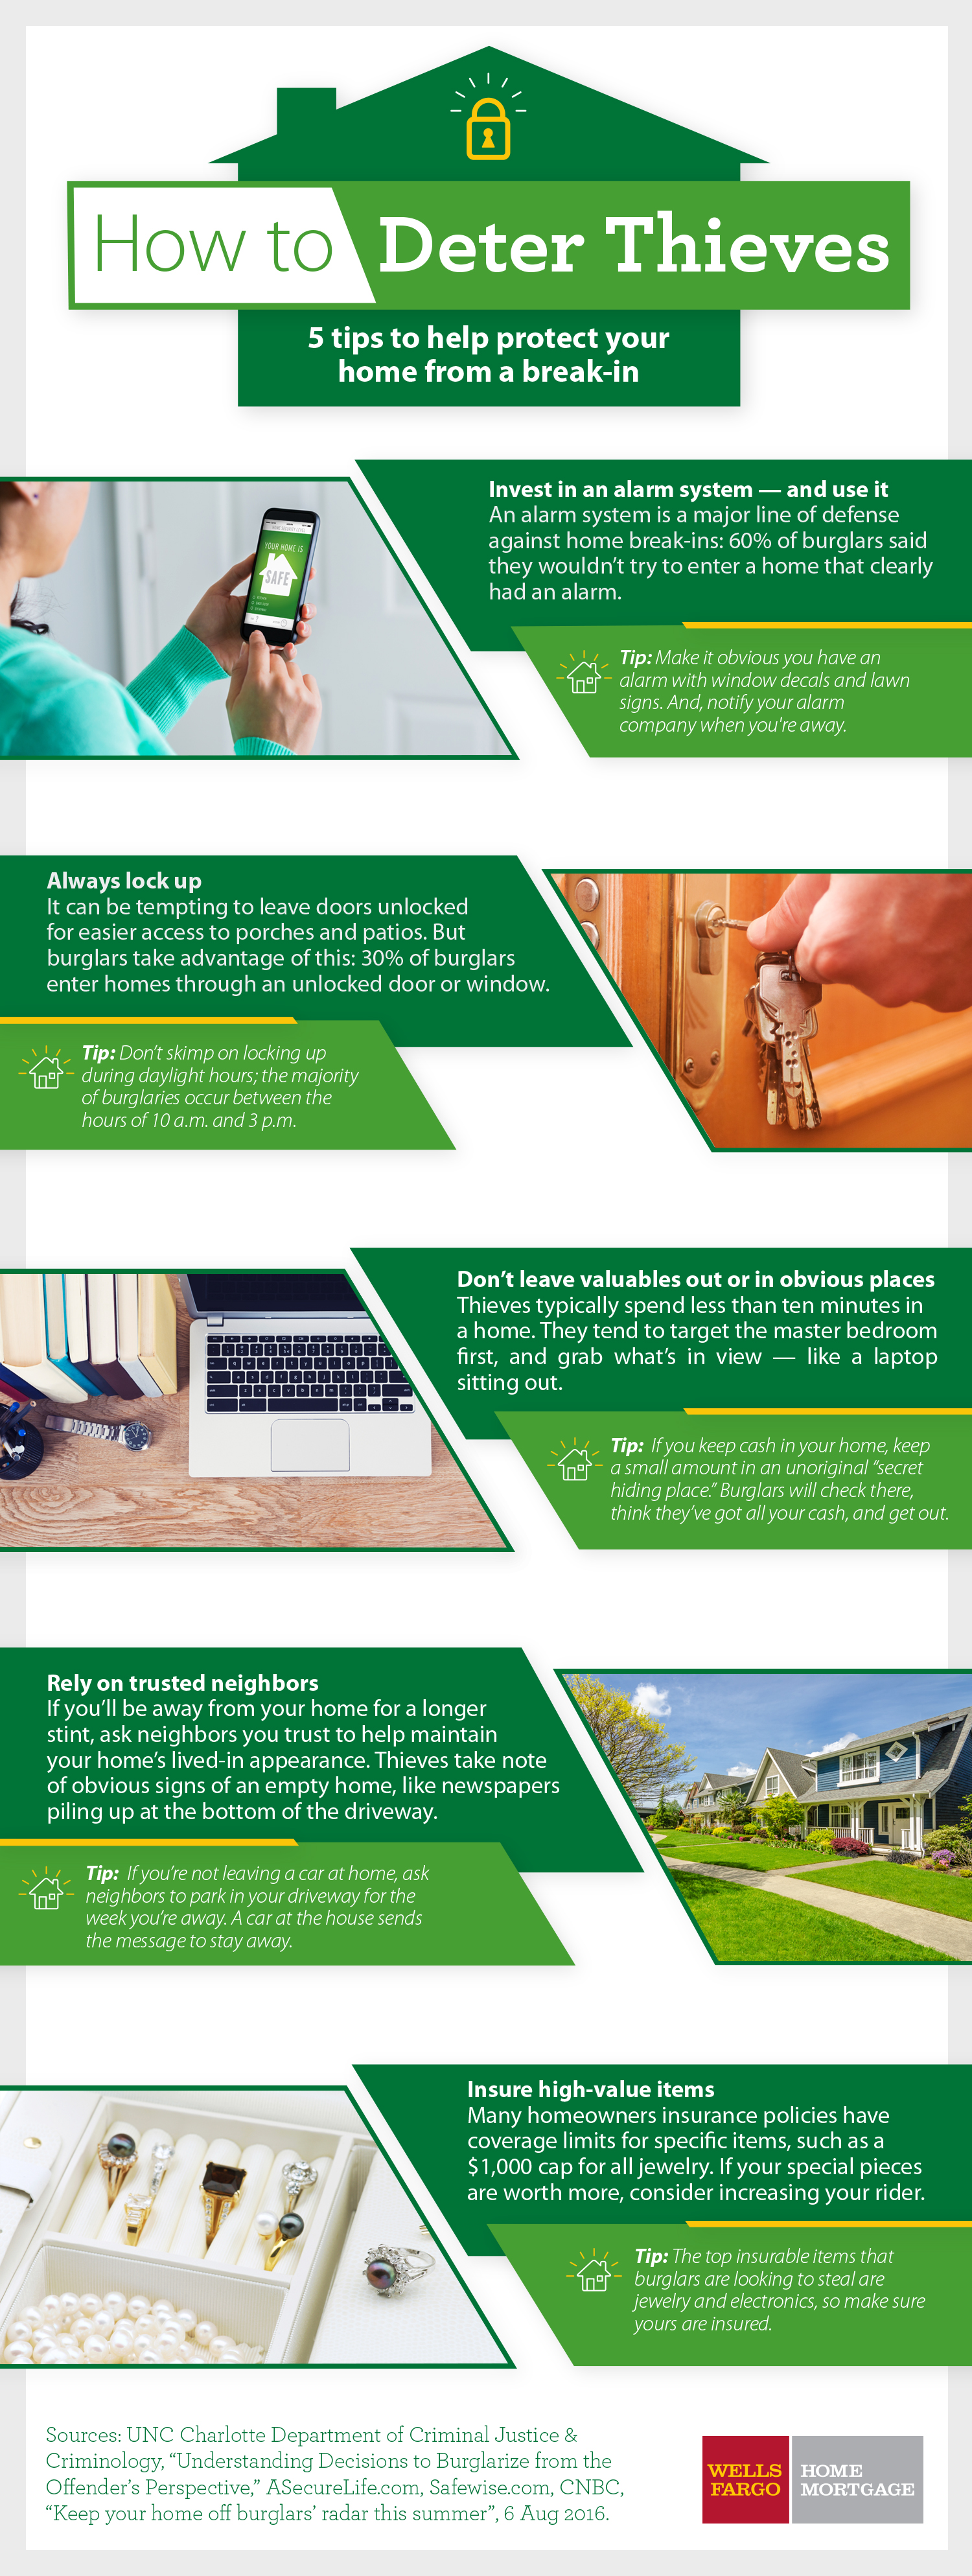 5 of the Best Home Security Tips - How to Deter Thieves